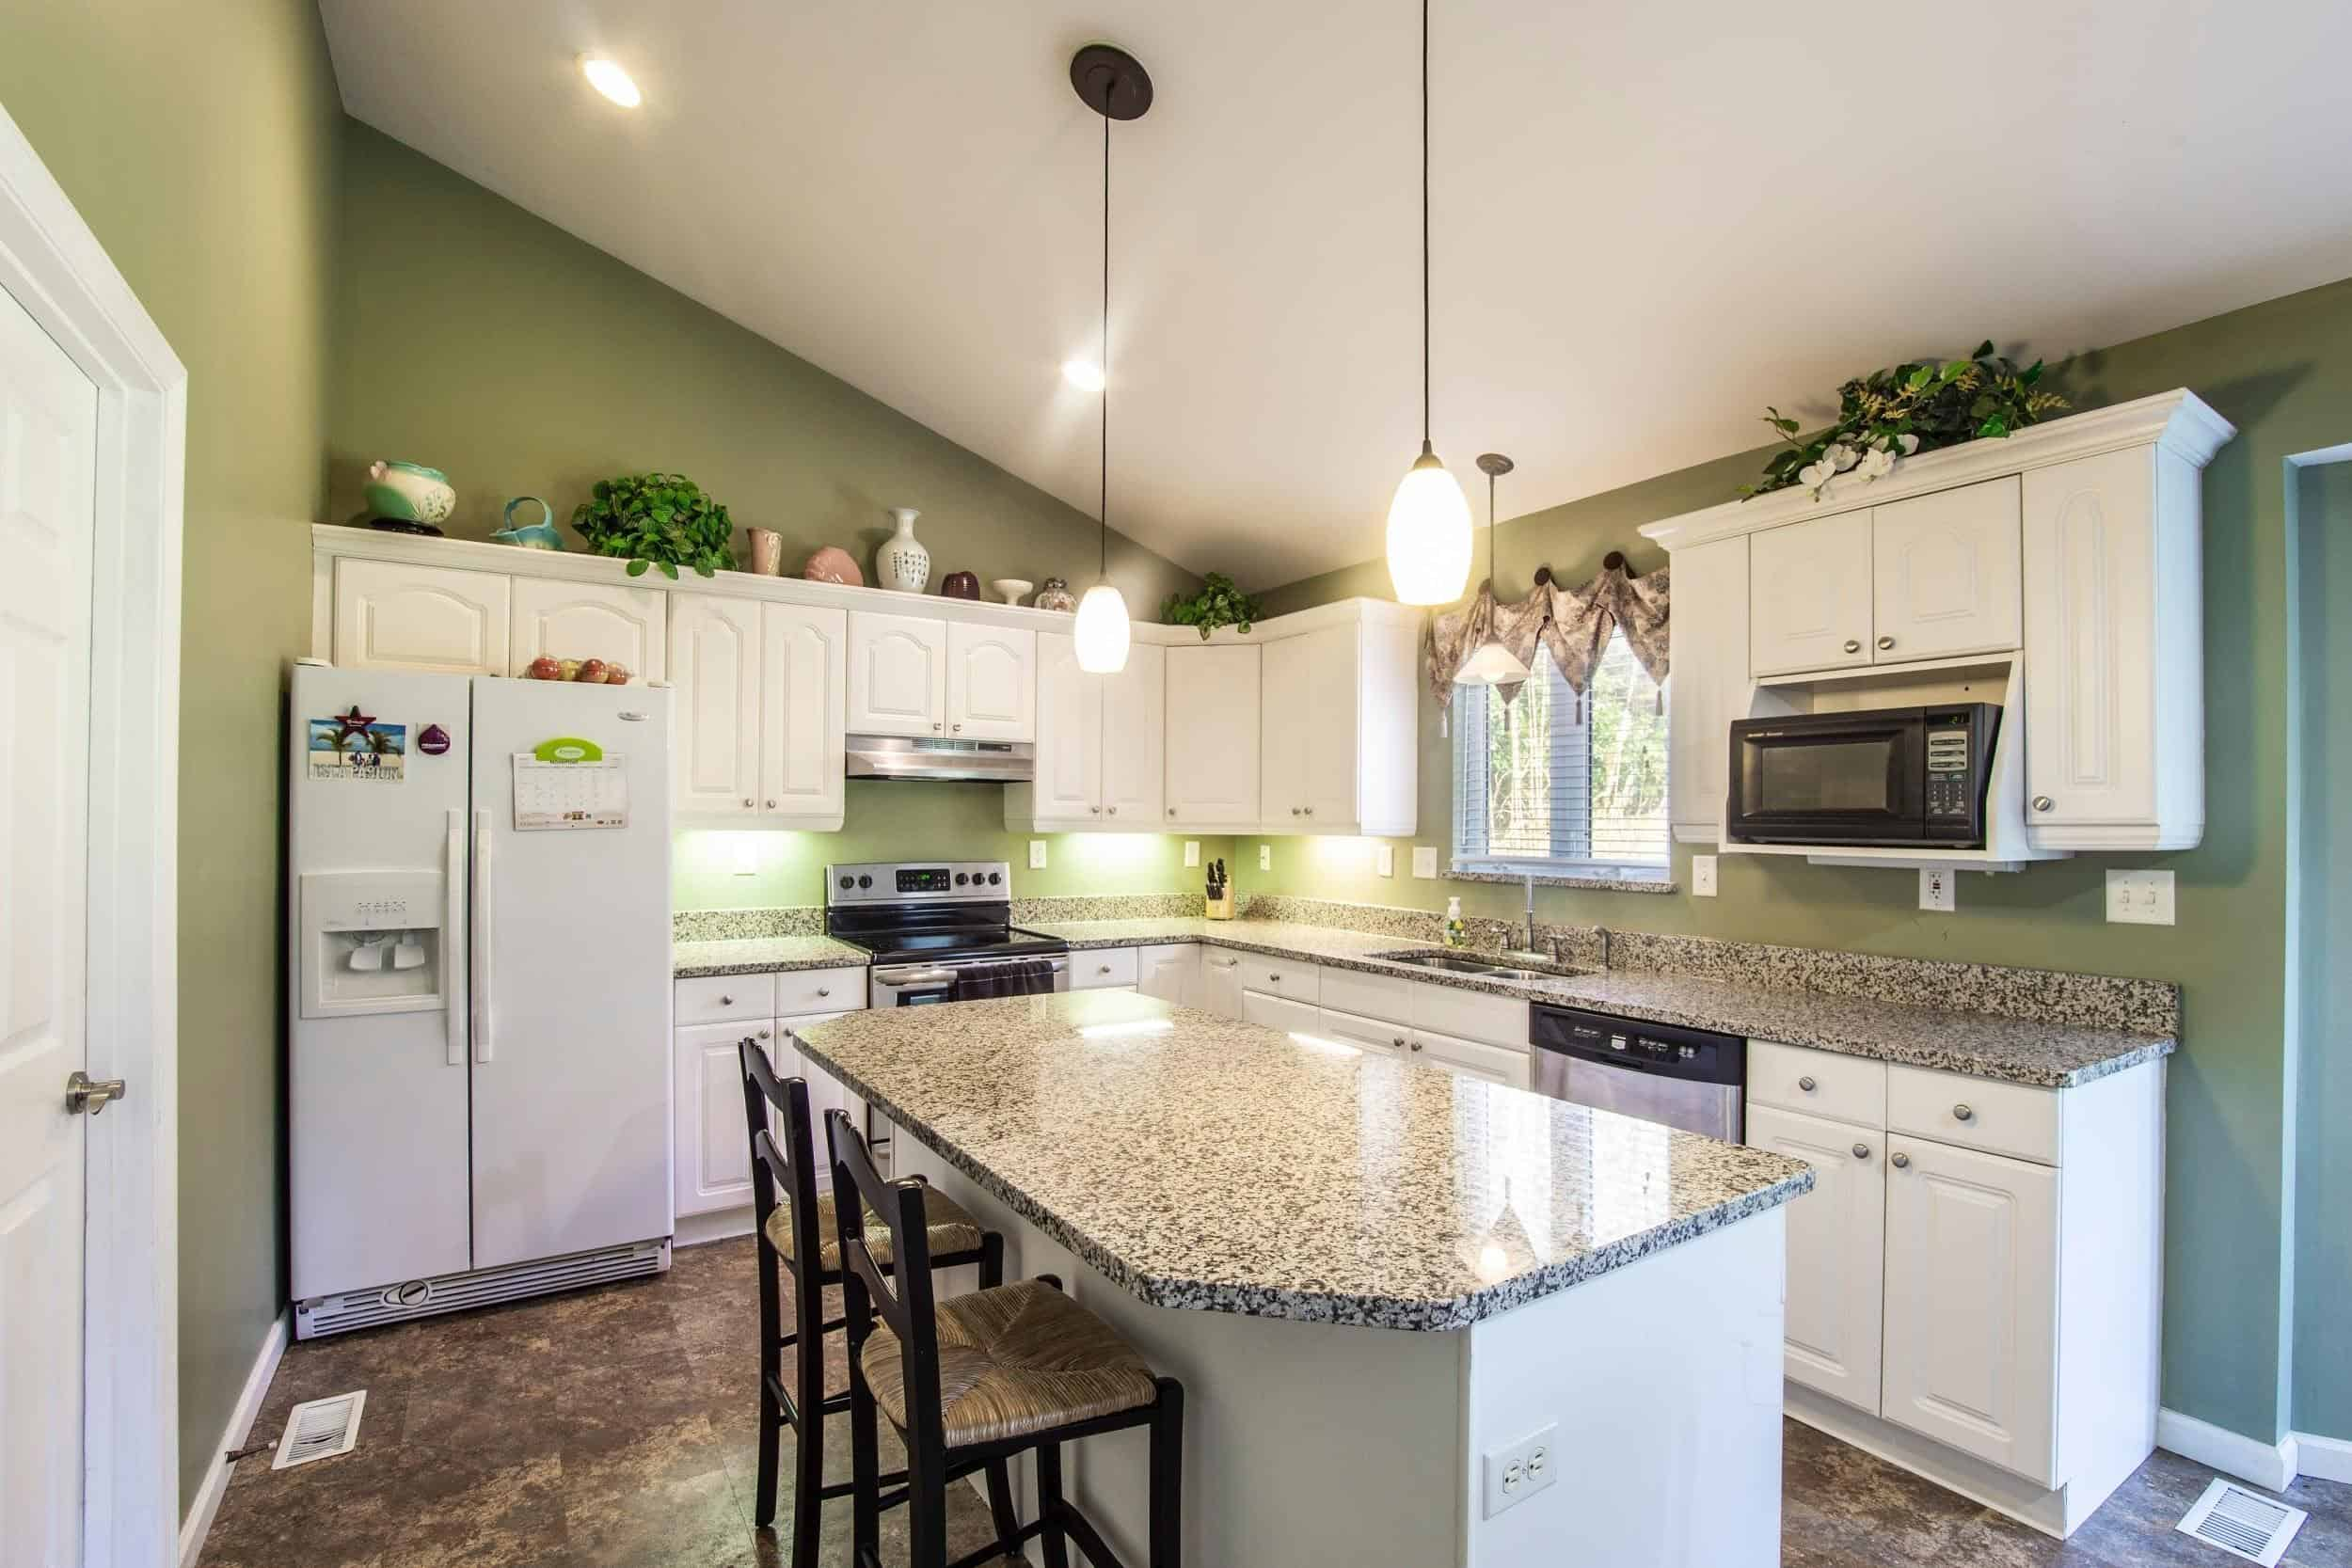 What Kinds of Blinds Are Best for Kitchens - Spice Up Your Kitchen